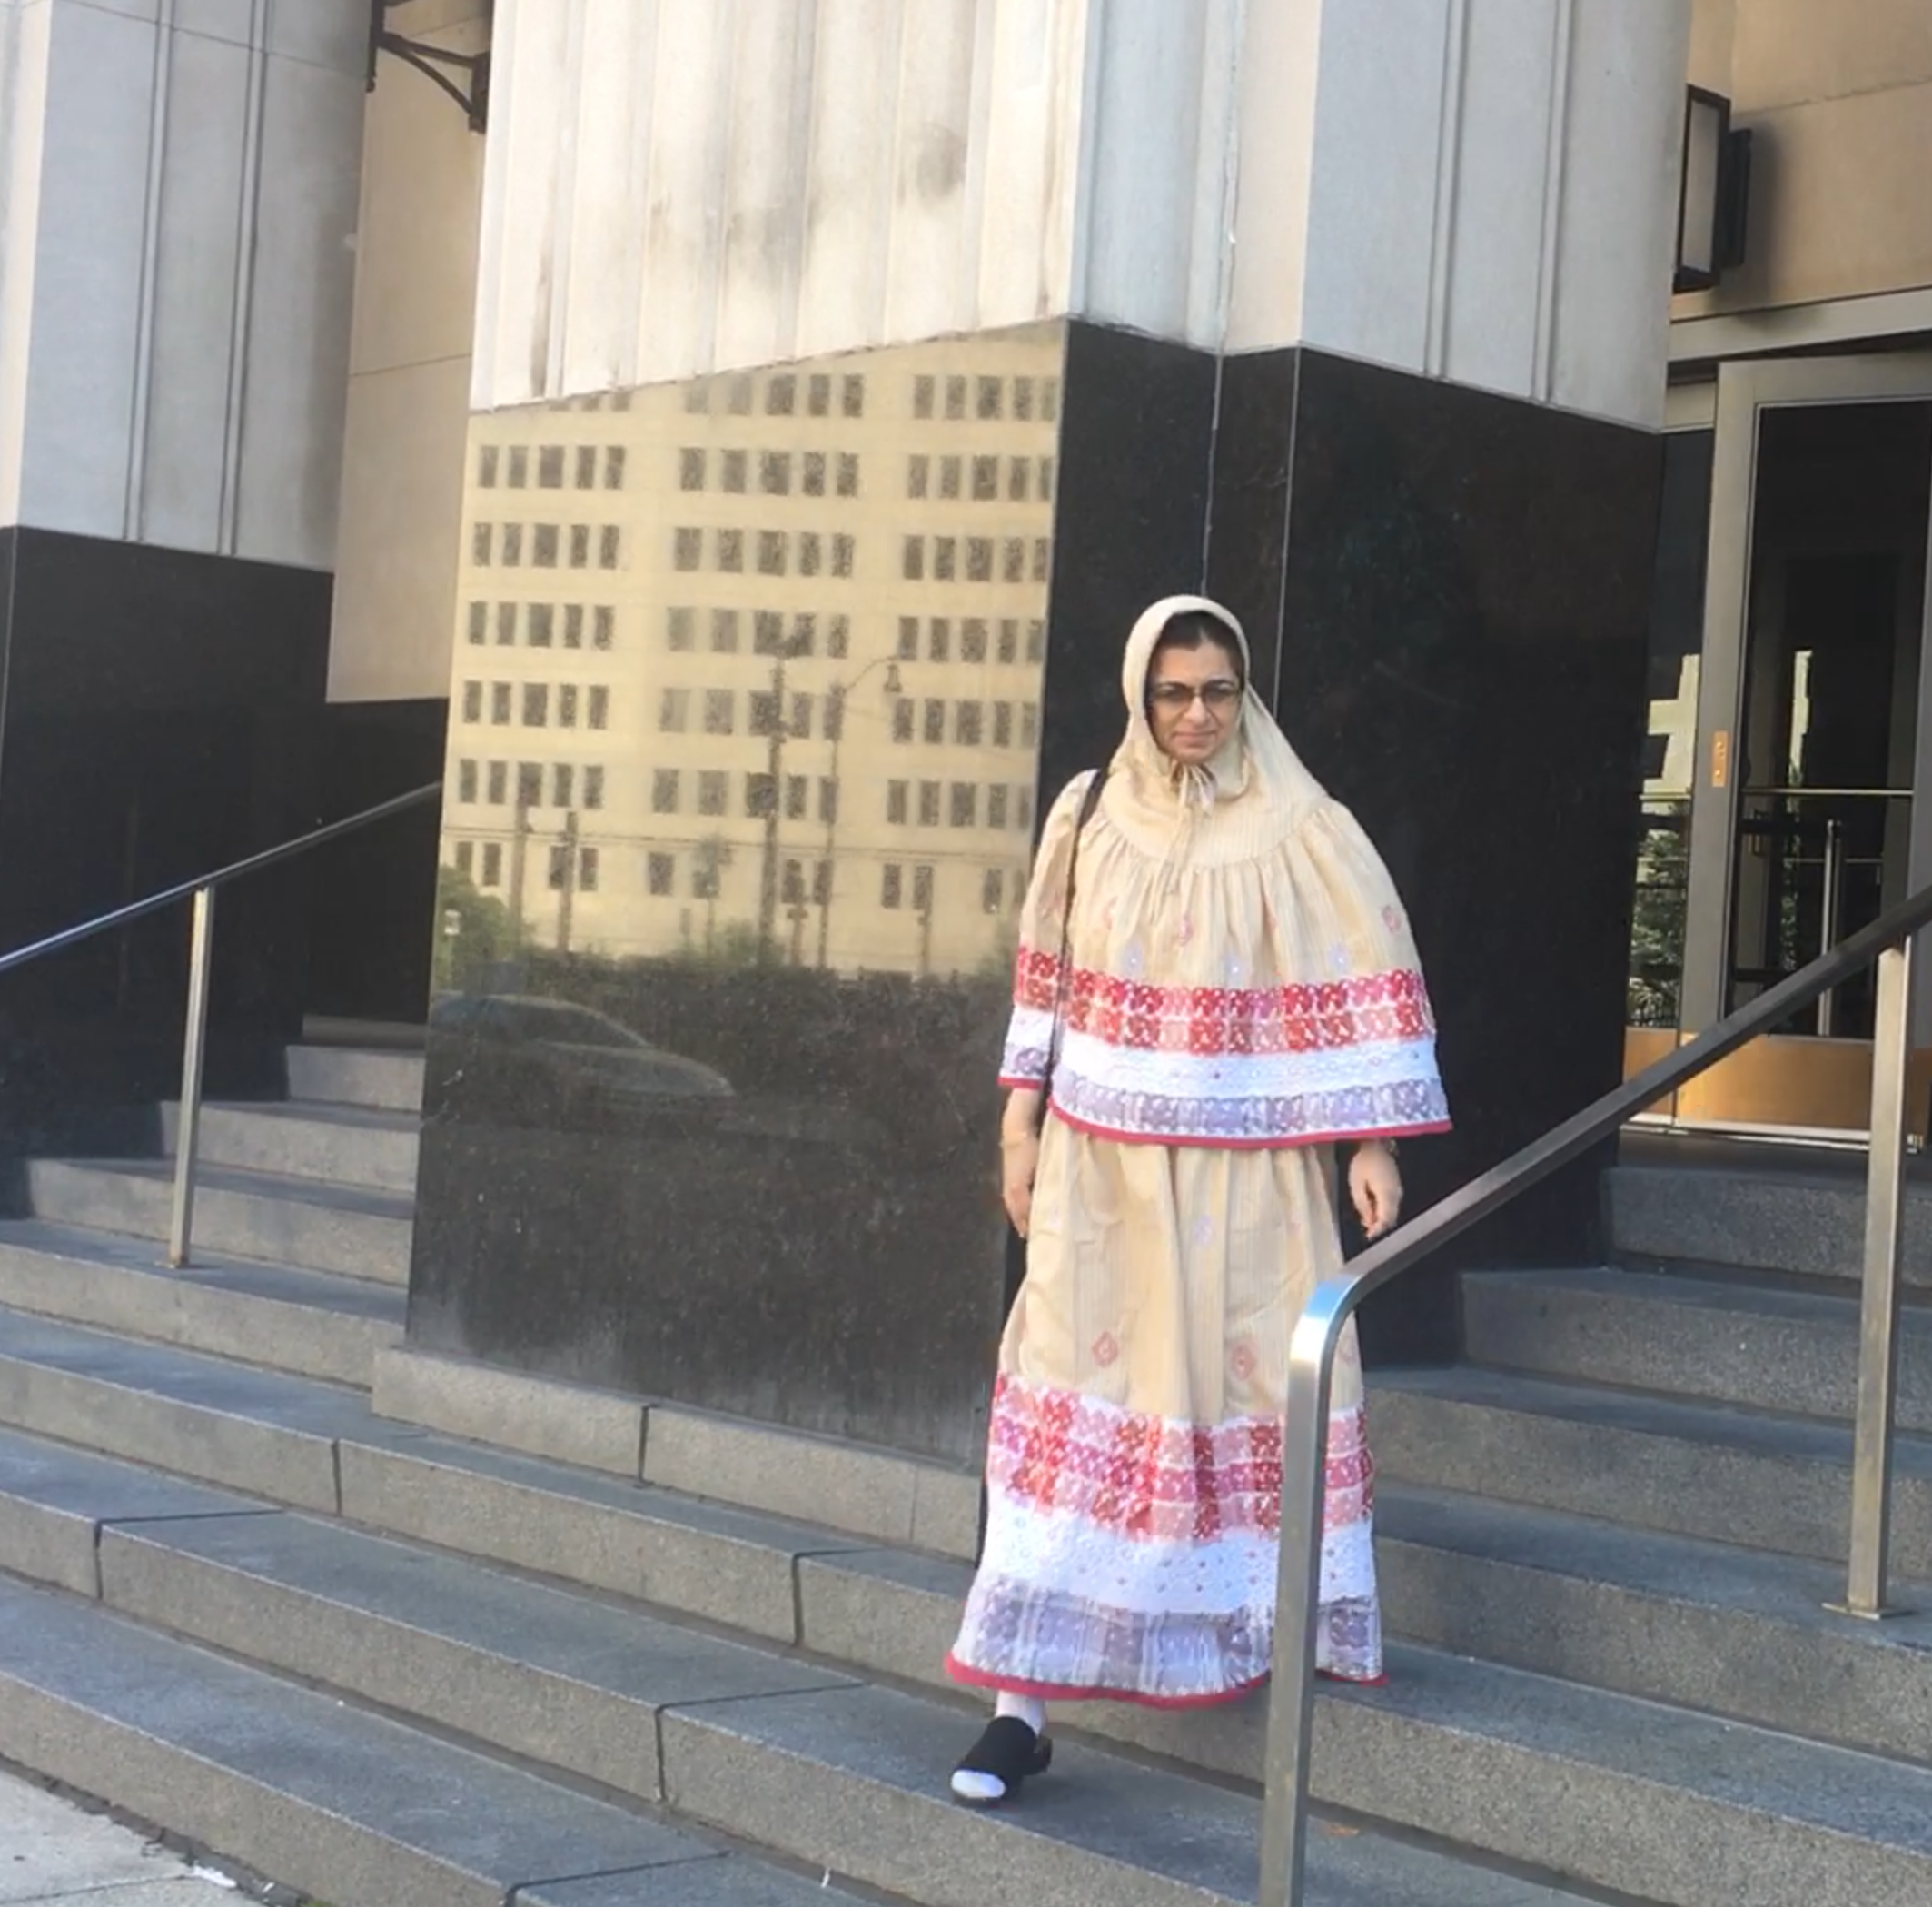 Feds abandon female genital mutilation appeal